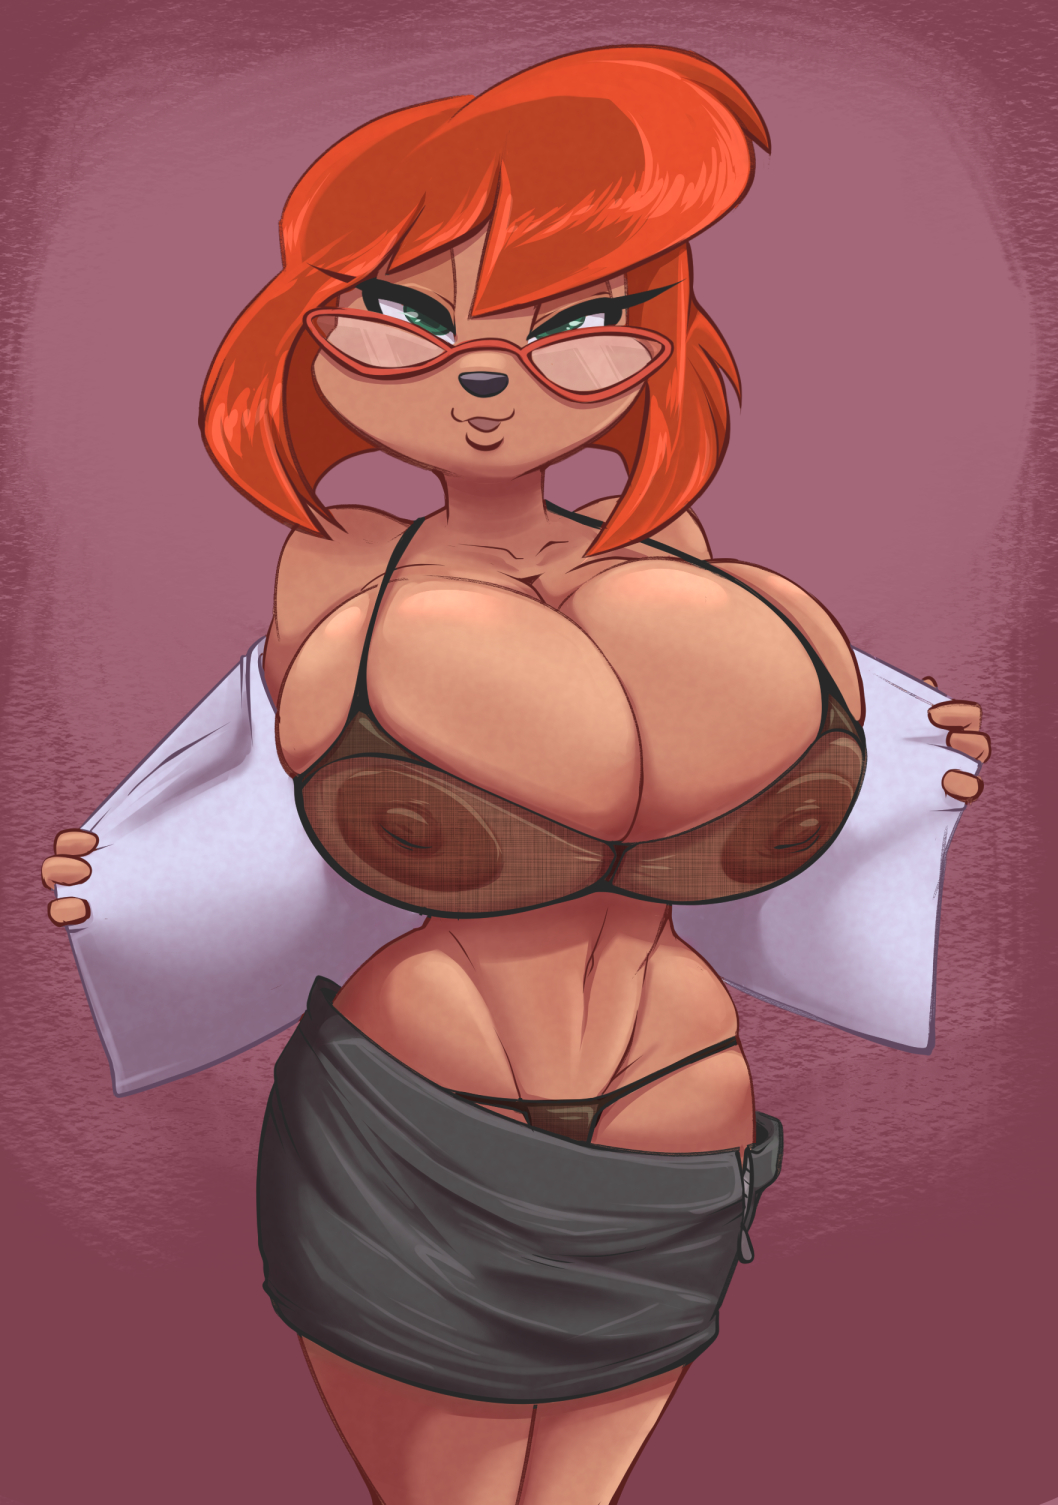 extremely goofy mochachino movie an Legend of zelda breast expansion